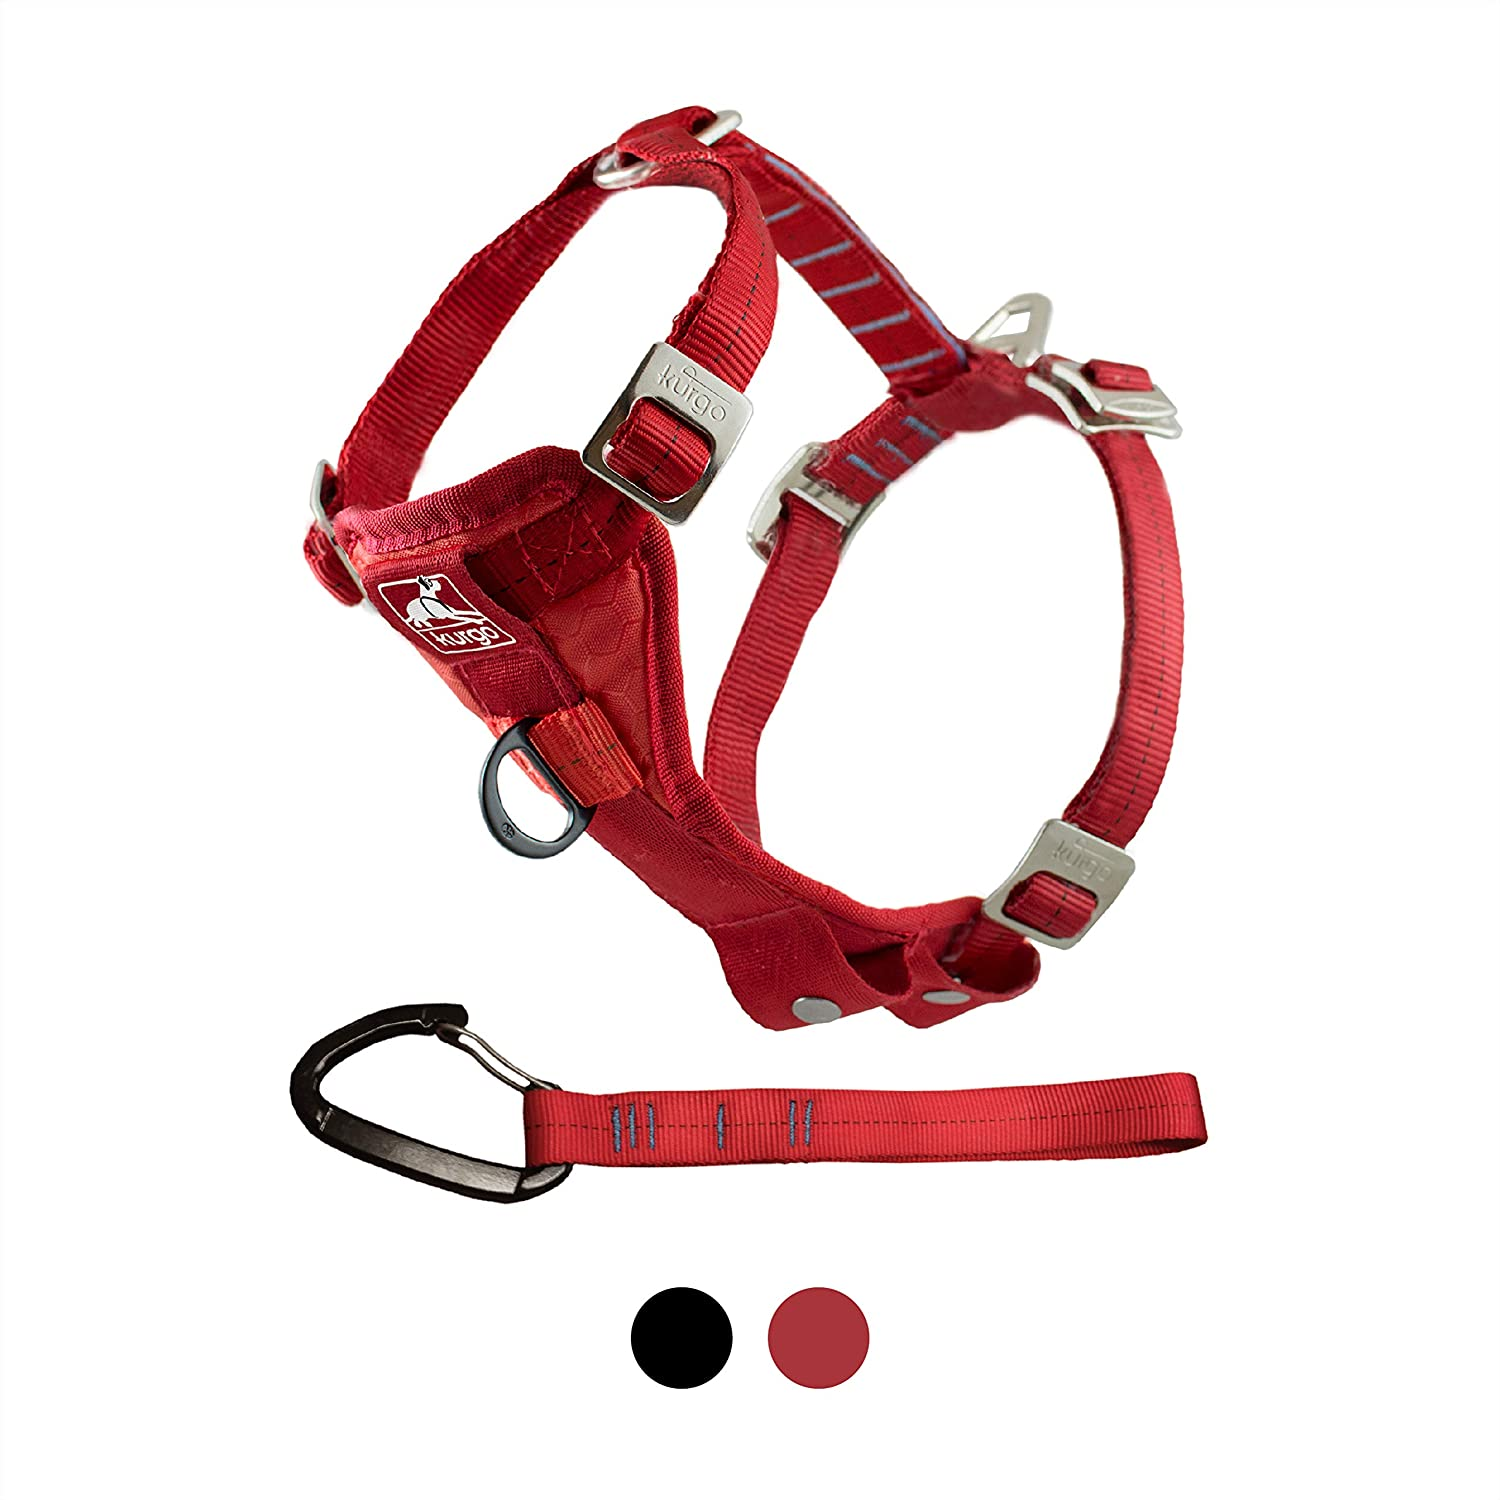 Kurgo Walking And Car Harness For Dogs